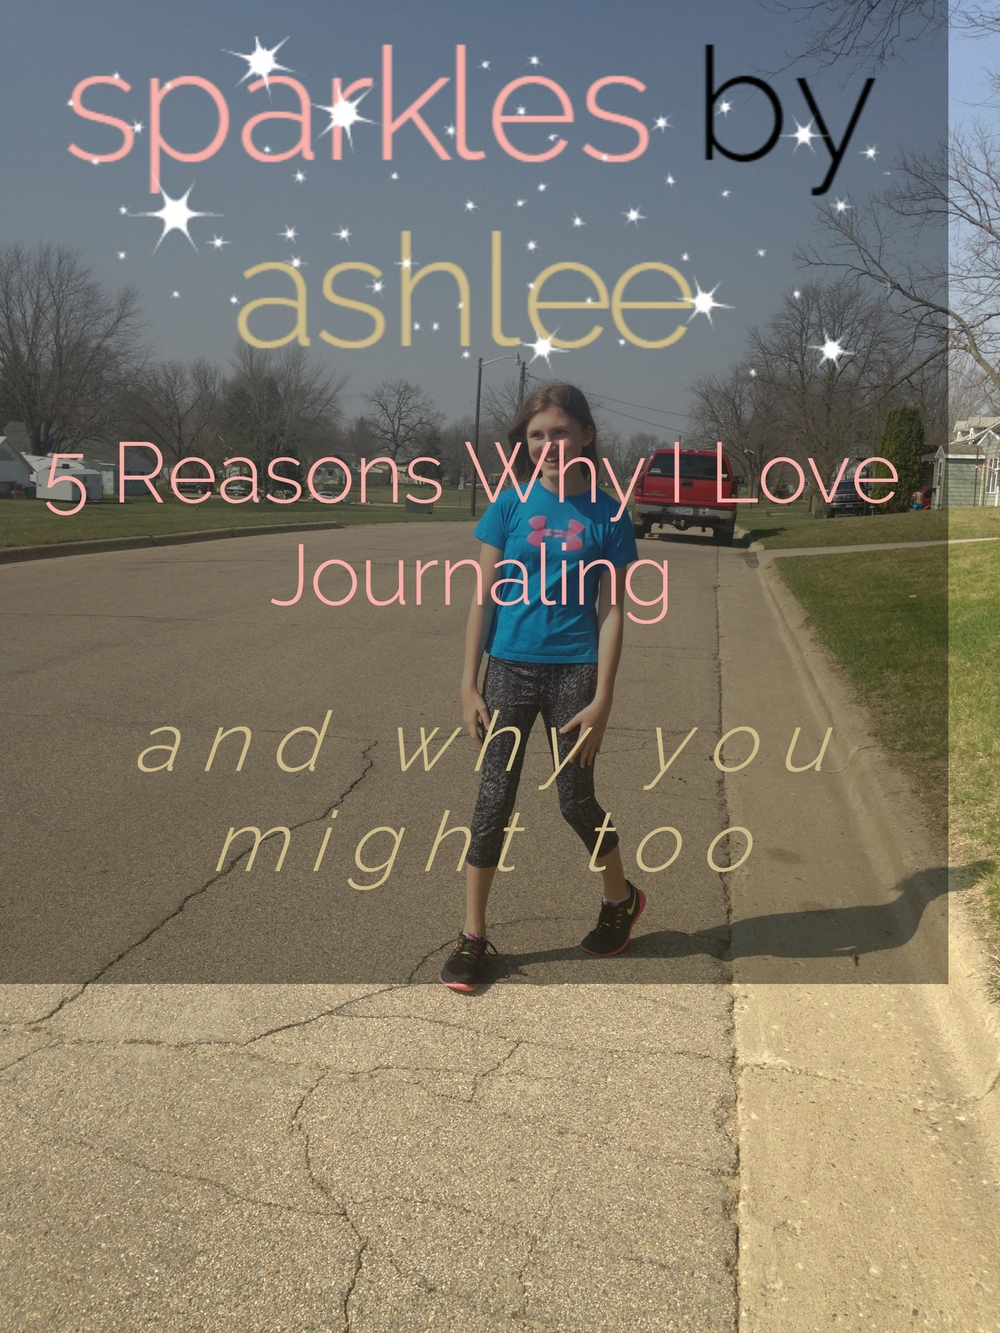 5-Reasons-Why-I-Love-Journaling-Sparkles-by-Ashlee.jpg